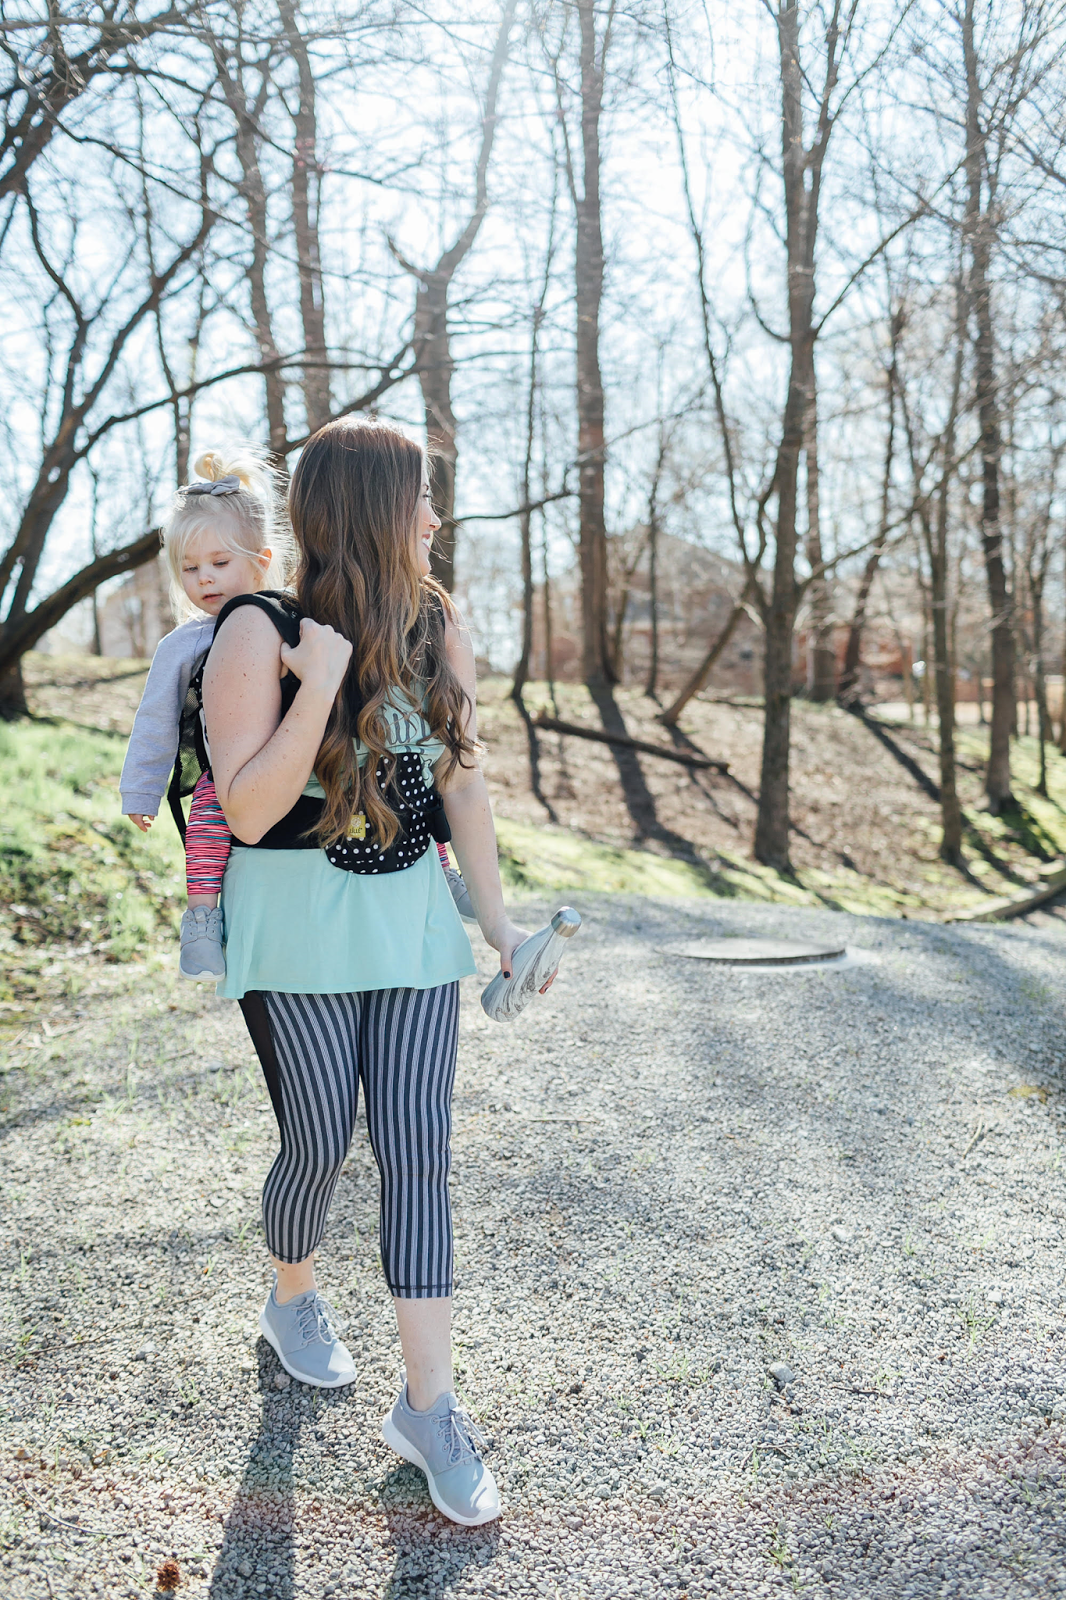 How To Workout With Kids by Walking in Memphis in High Heels: Babywearing